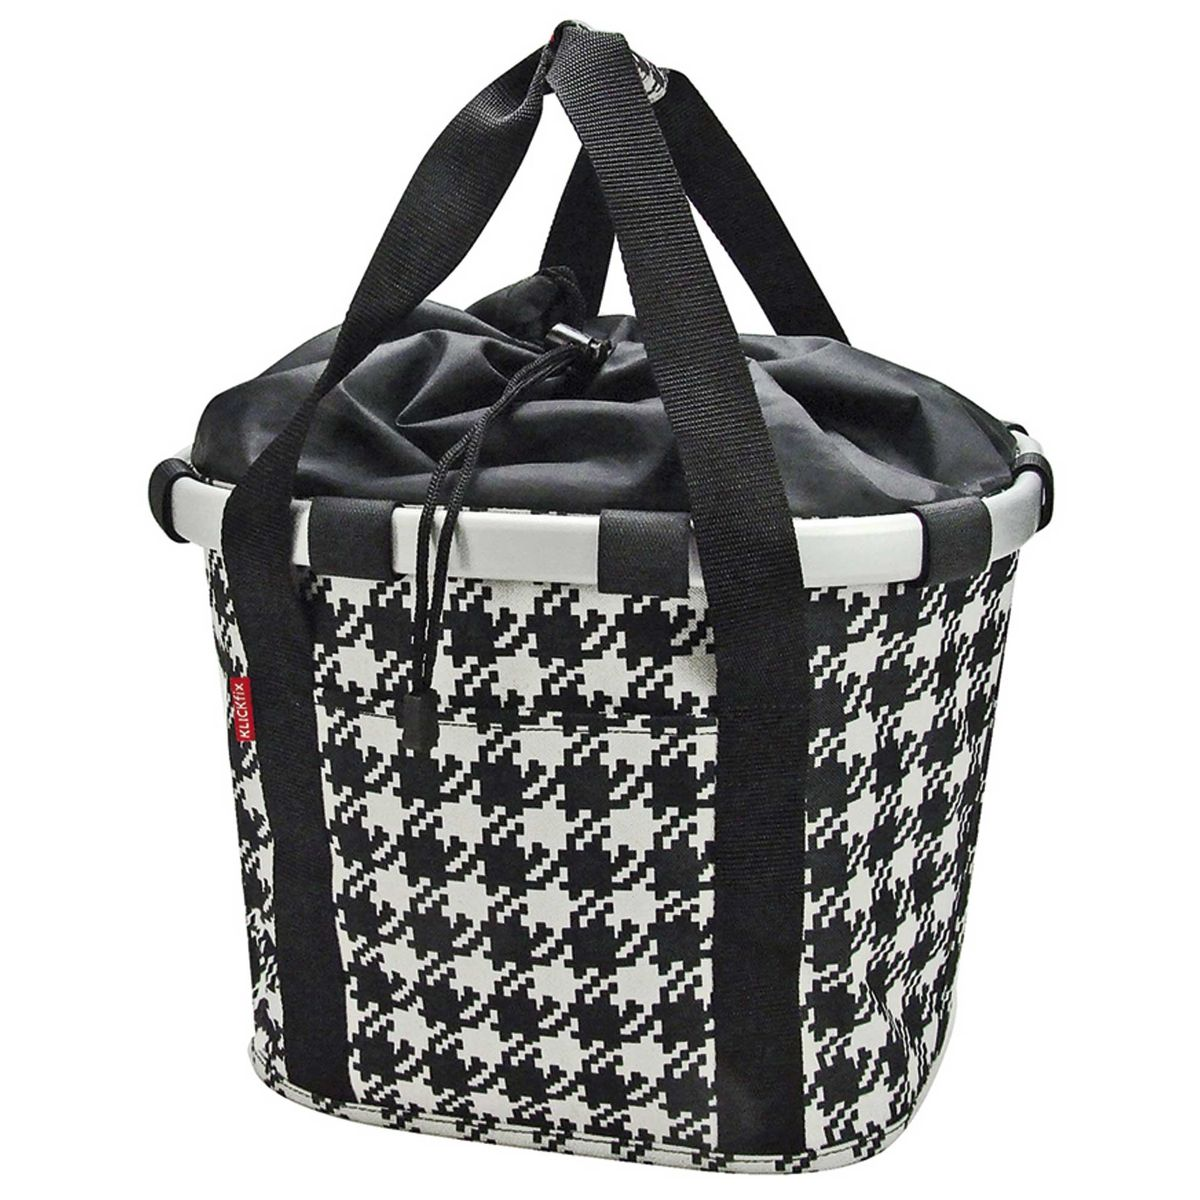 BIKEBASKET handlebar bag with KLICKfix mount